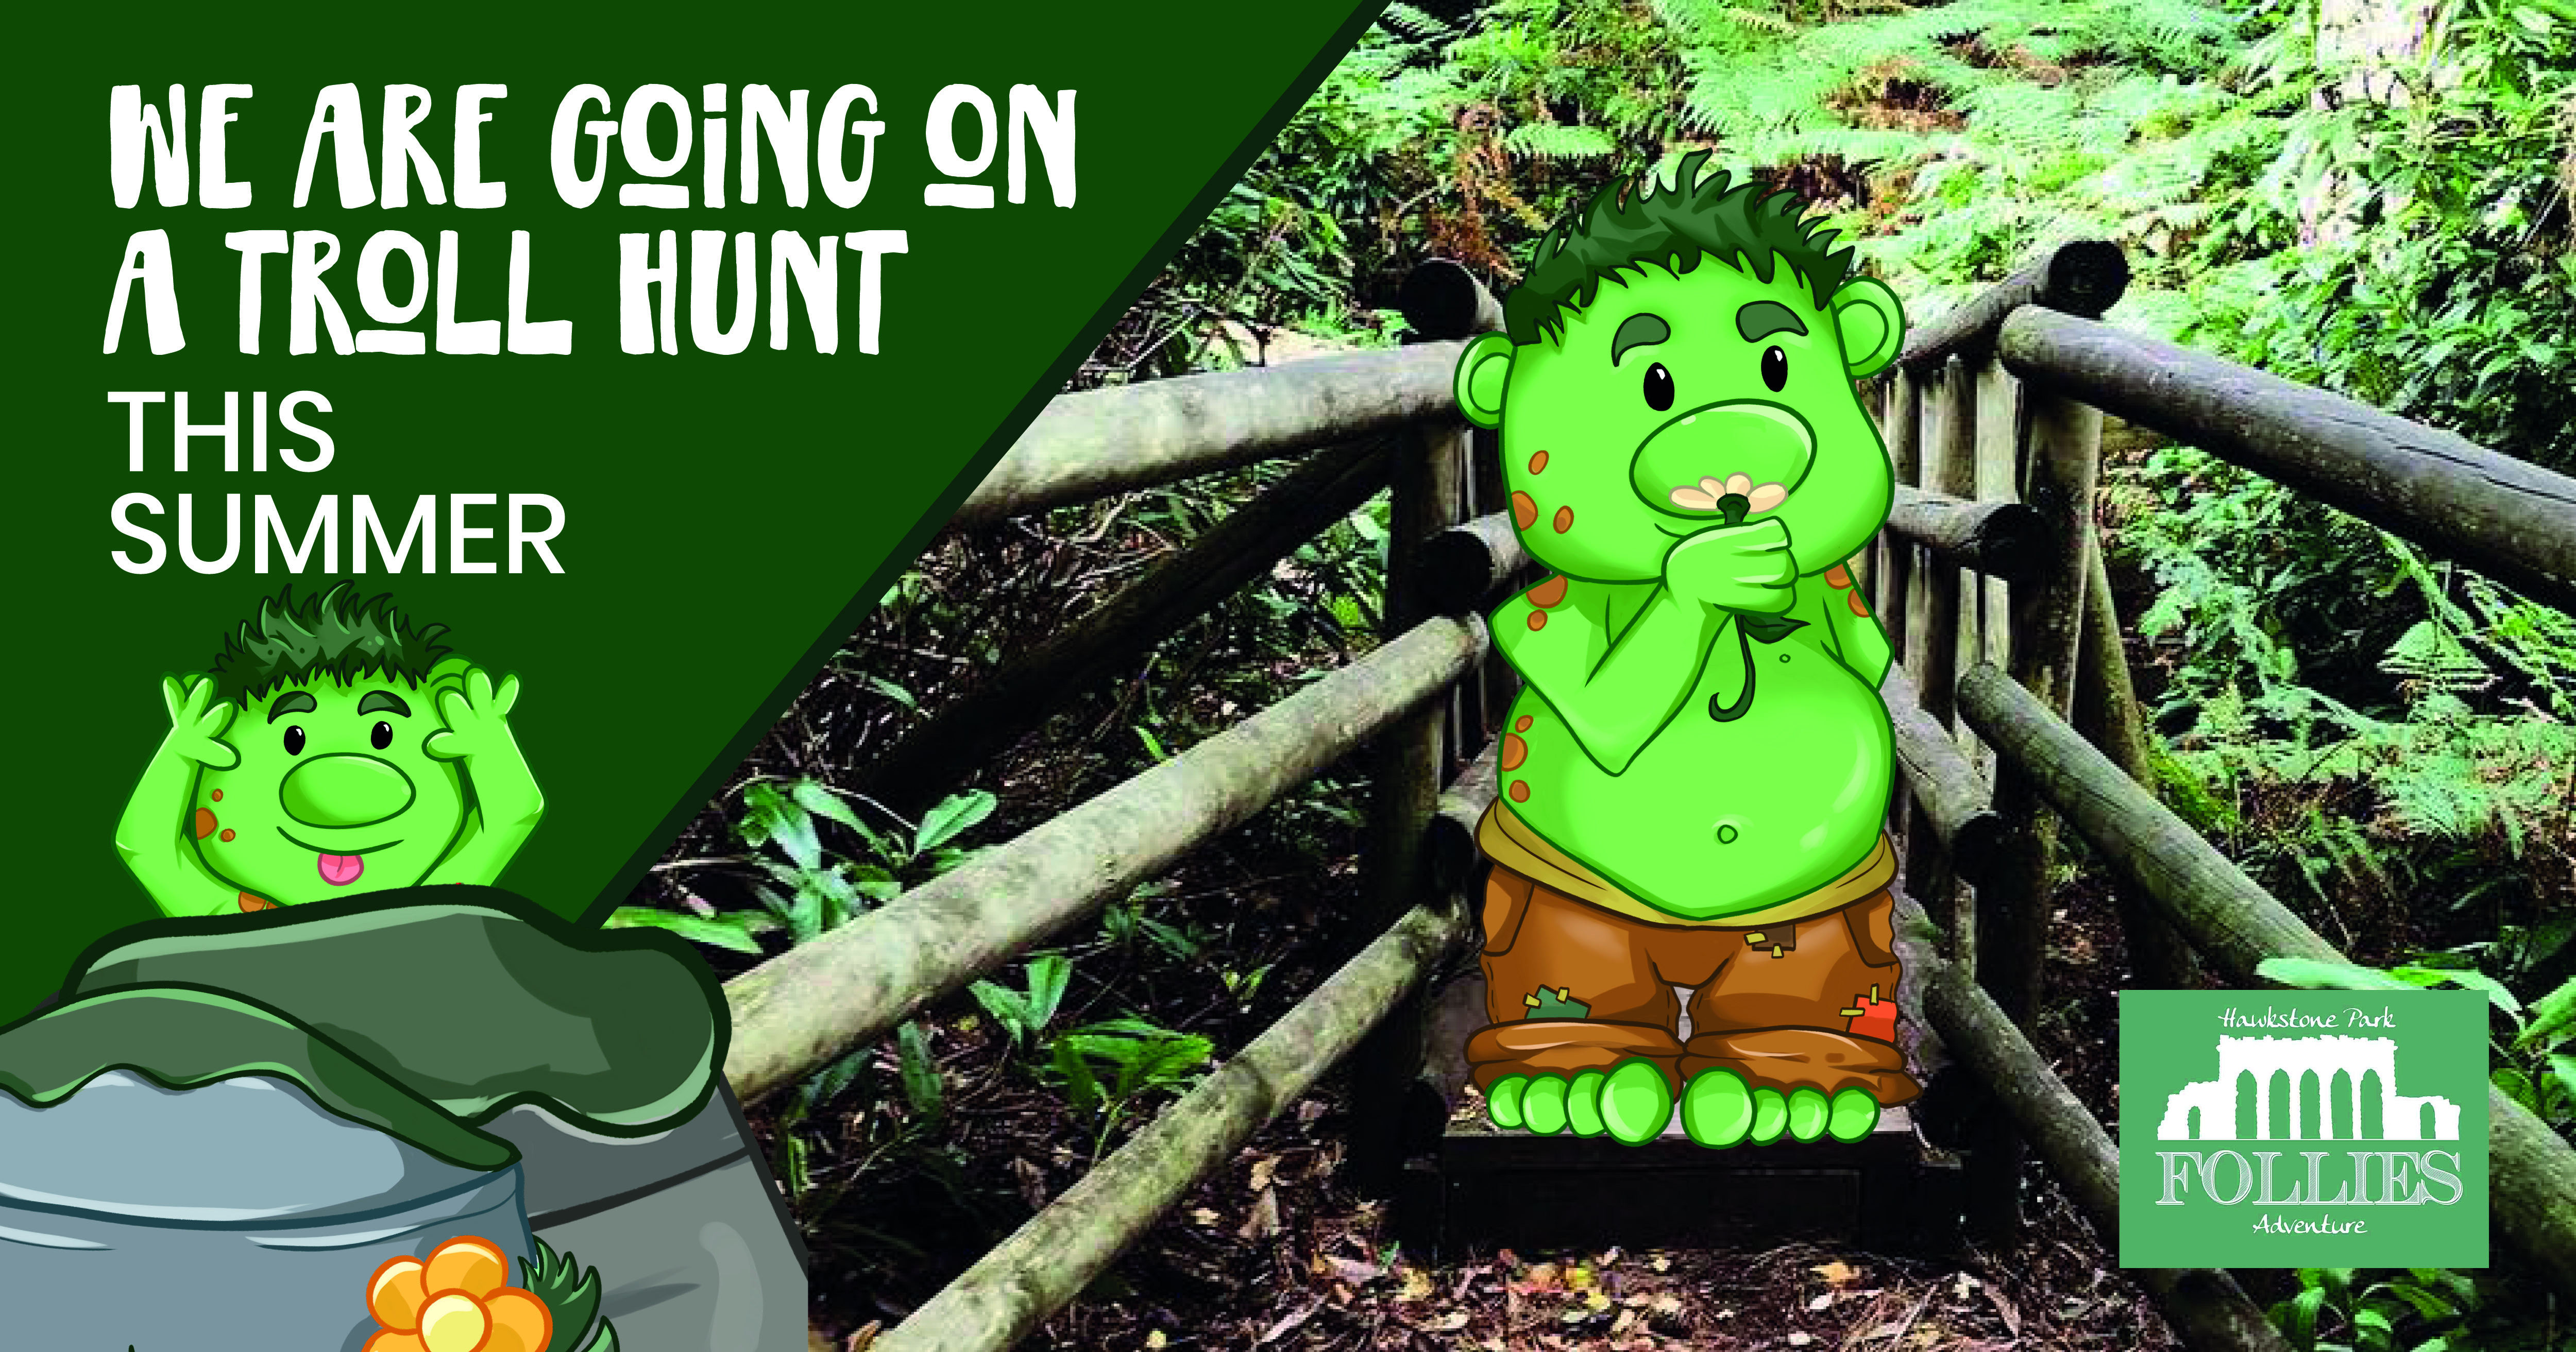 We are going on a troll hunt at Hawkstone Park Follies Shrewsbury